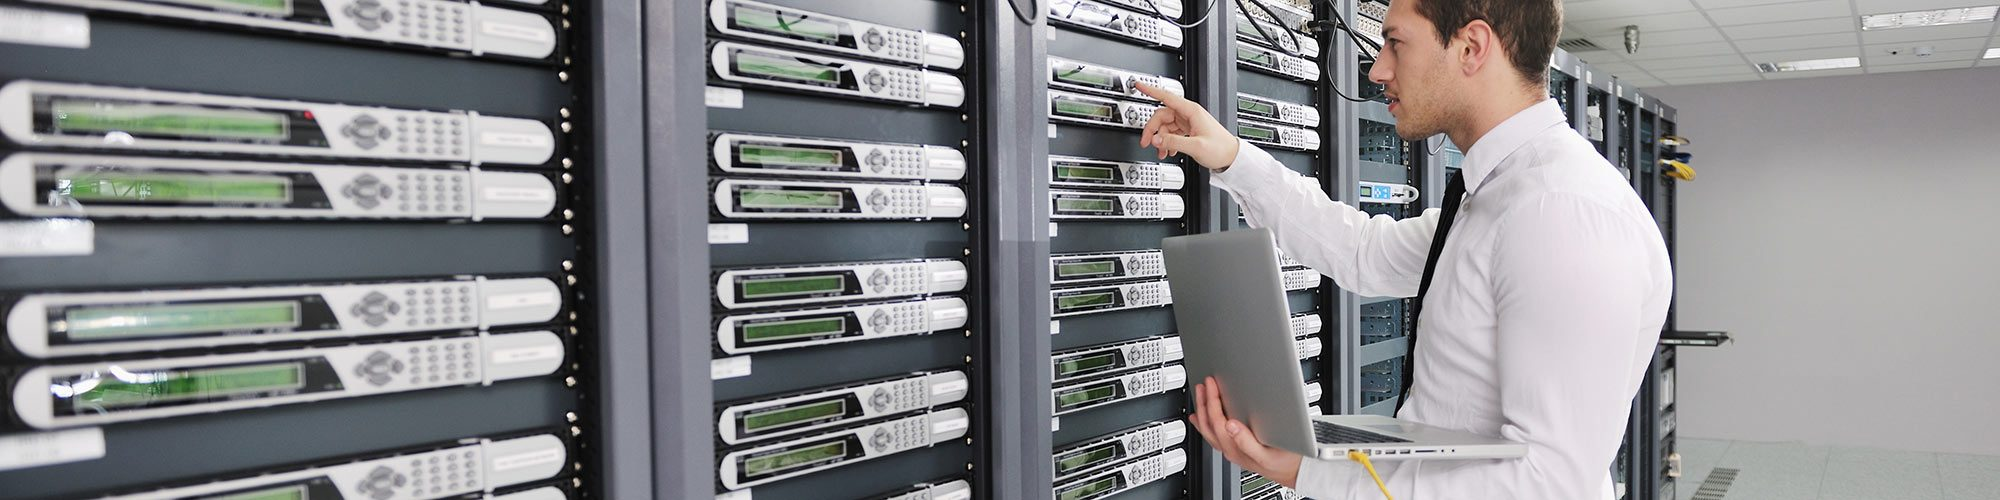 Monitoring servers without disconnection